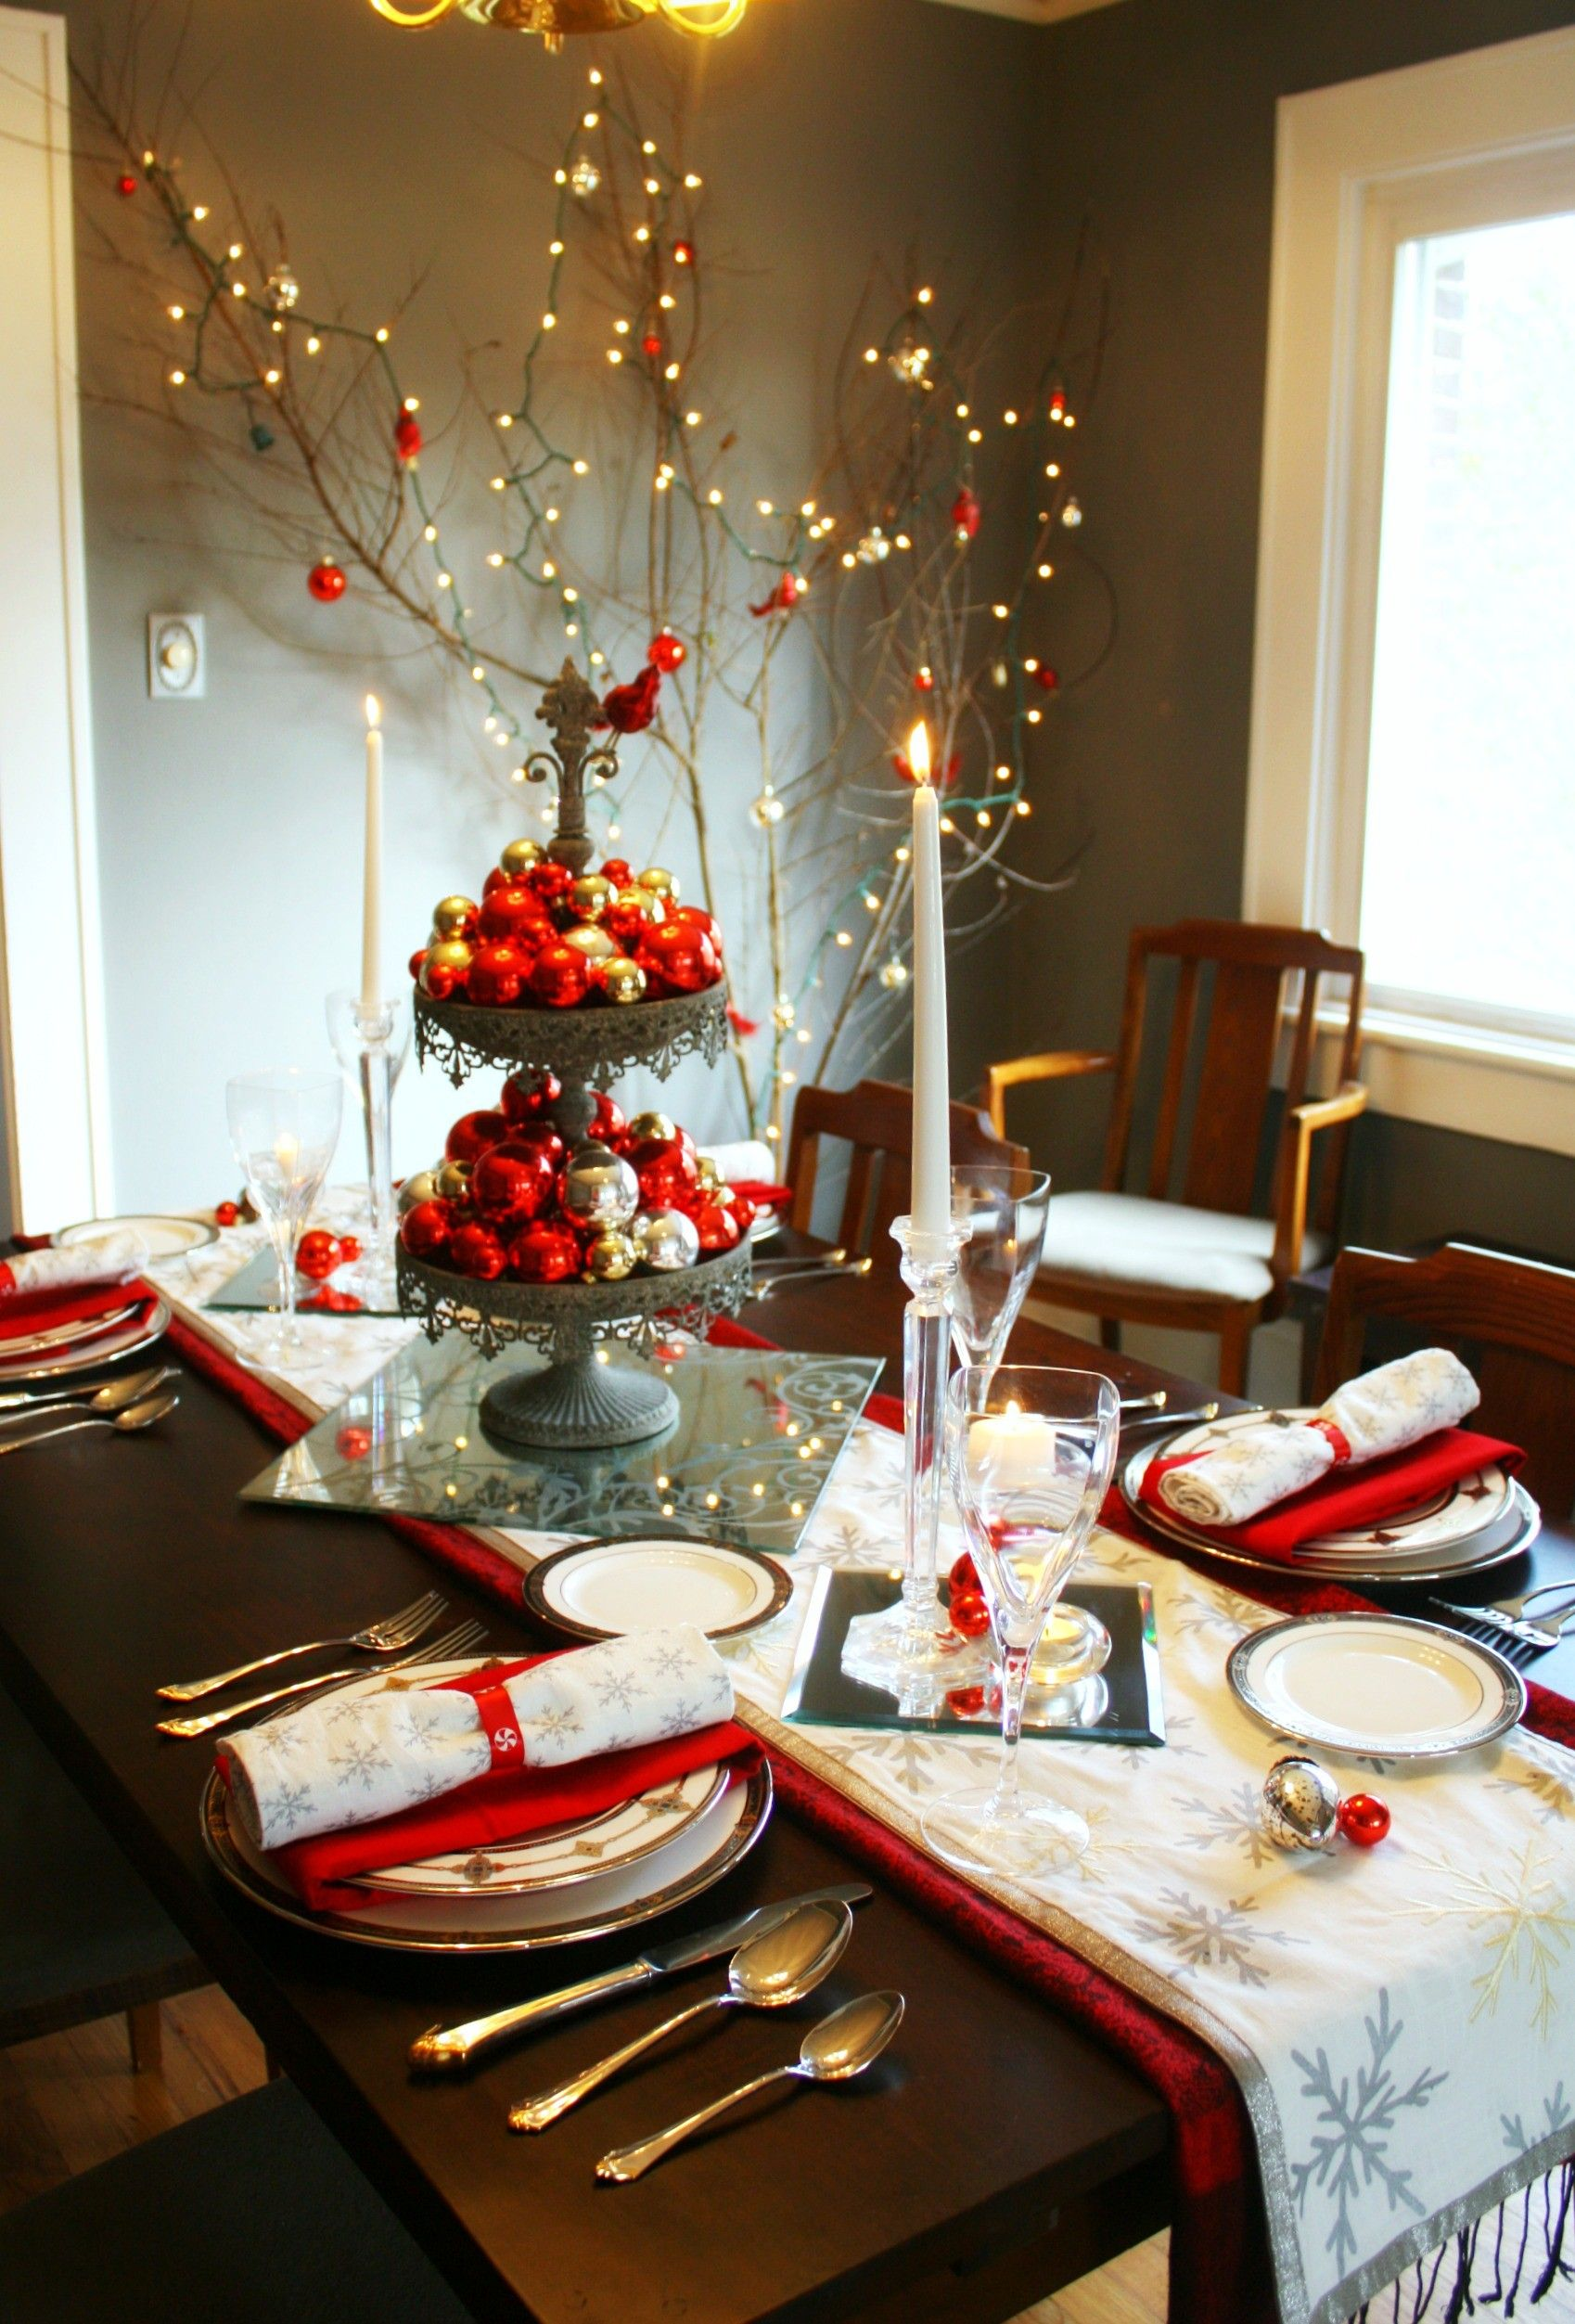 Xmas Inspo  Dining Room  Modern Design  Christmas Table New Dining Room Table Setting Ideas Decorating Inspiration